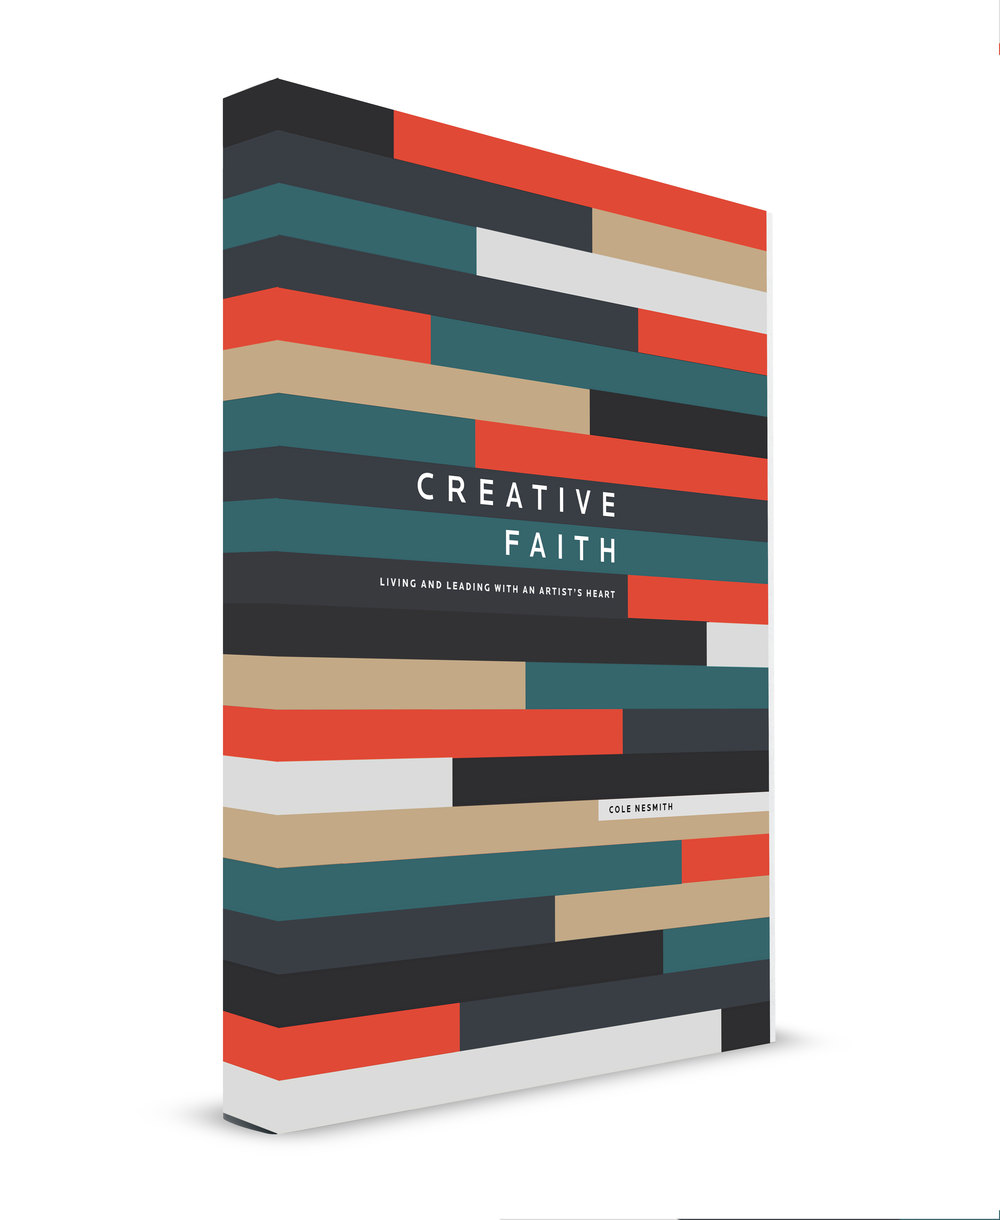 Creative Faith explores the intersection of art and faith. A free download at  NoiseTrade .